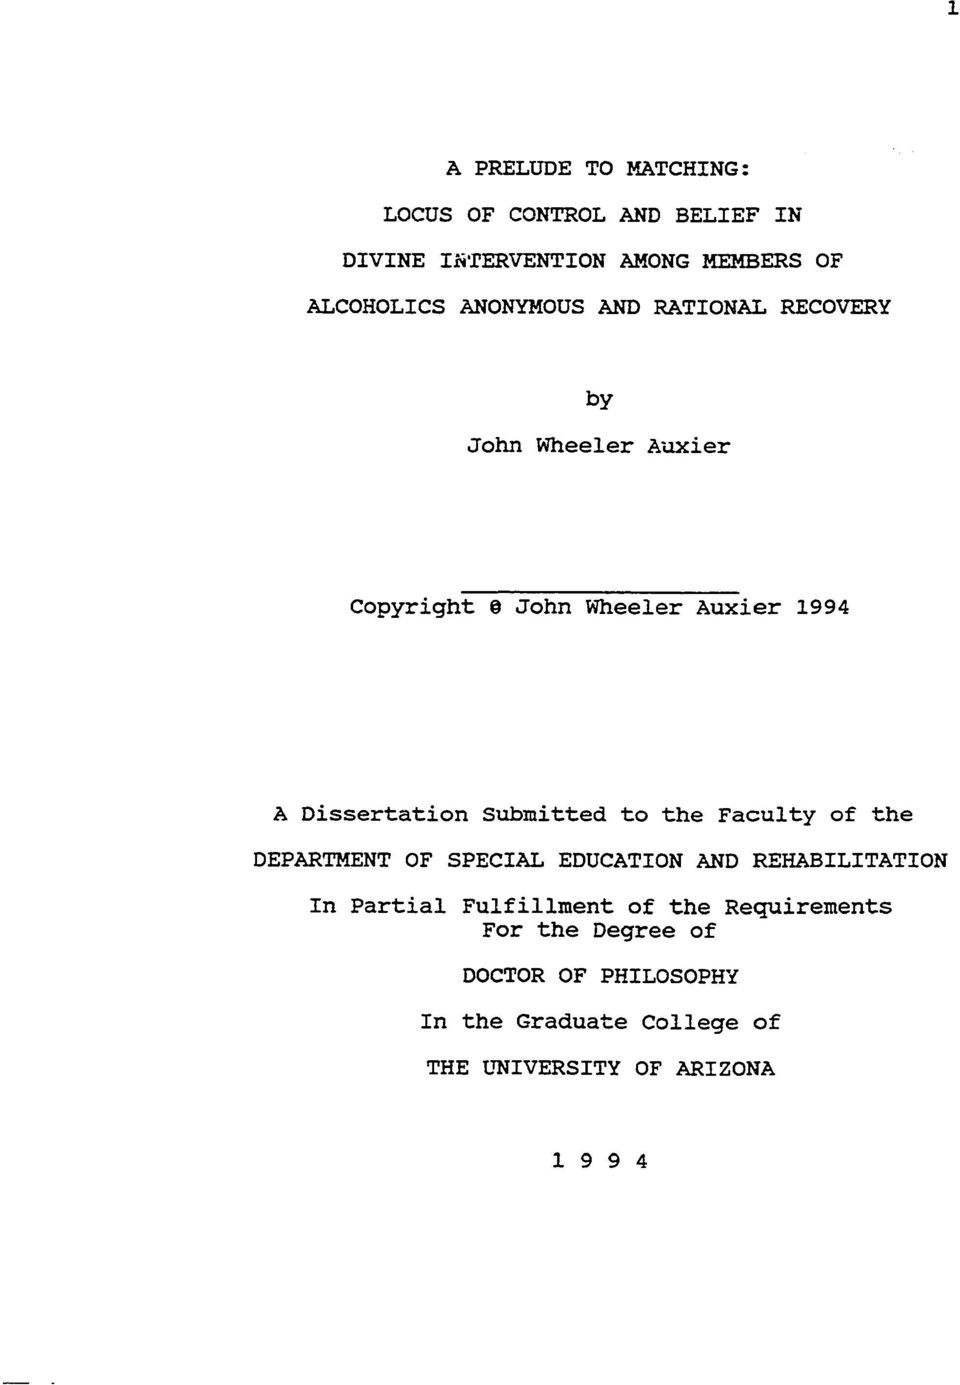 John Wheeler Auxier 1994 A Dissertation Submitted to the Faculty of the DEPARTMENT OF SPECIAL EDUCATION AND